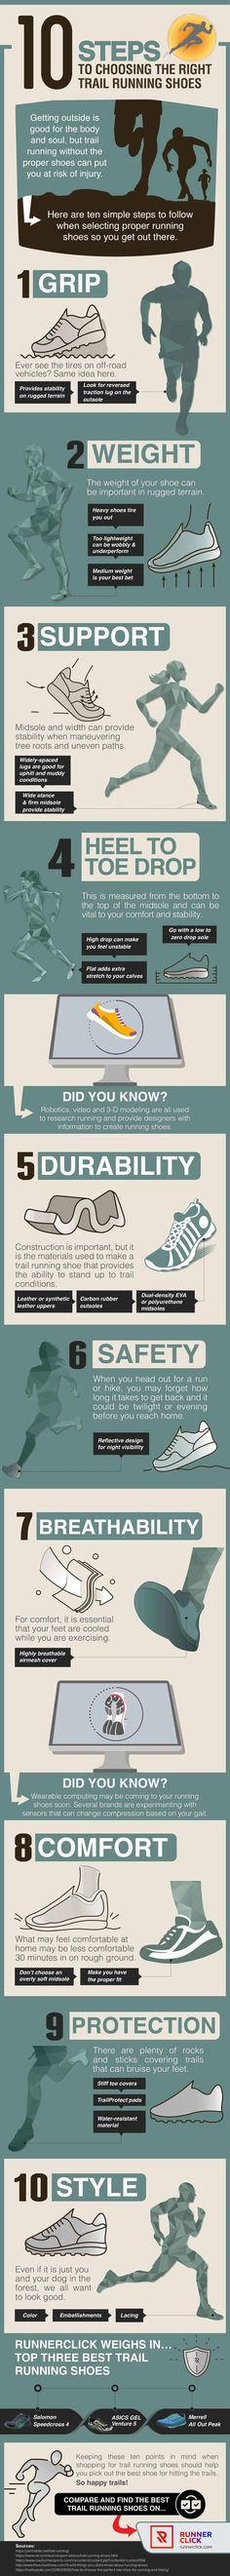 The Perfect Pair Of Trail Running Shoes - Infographic